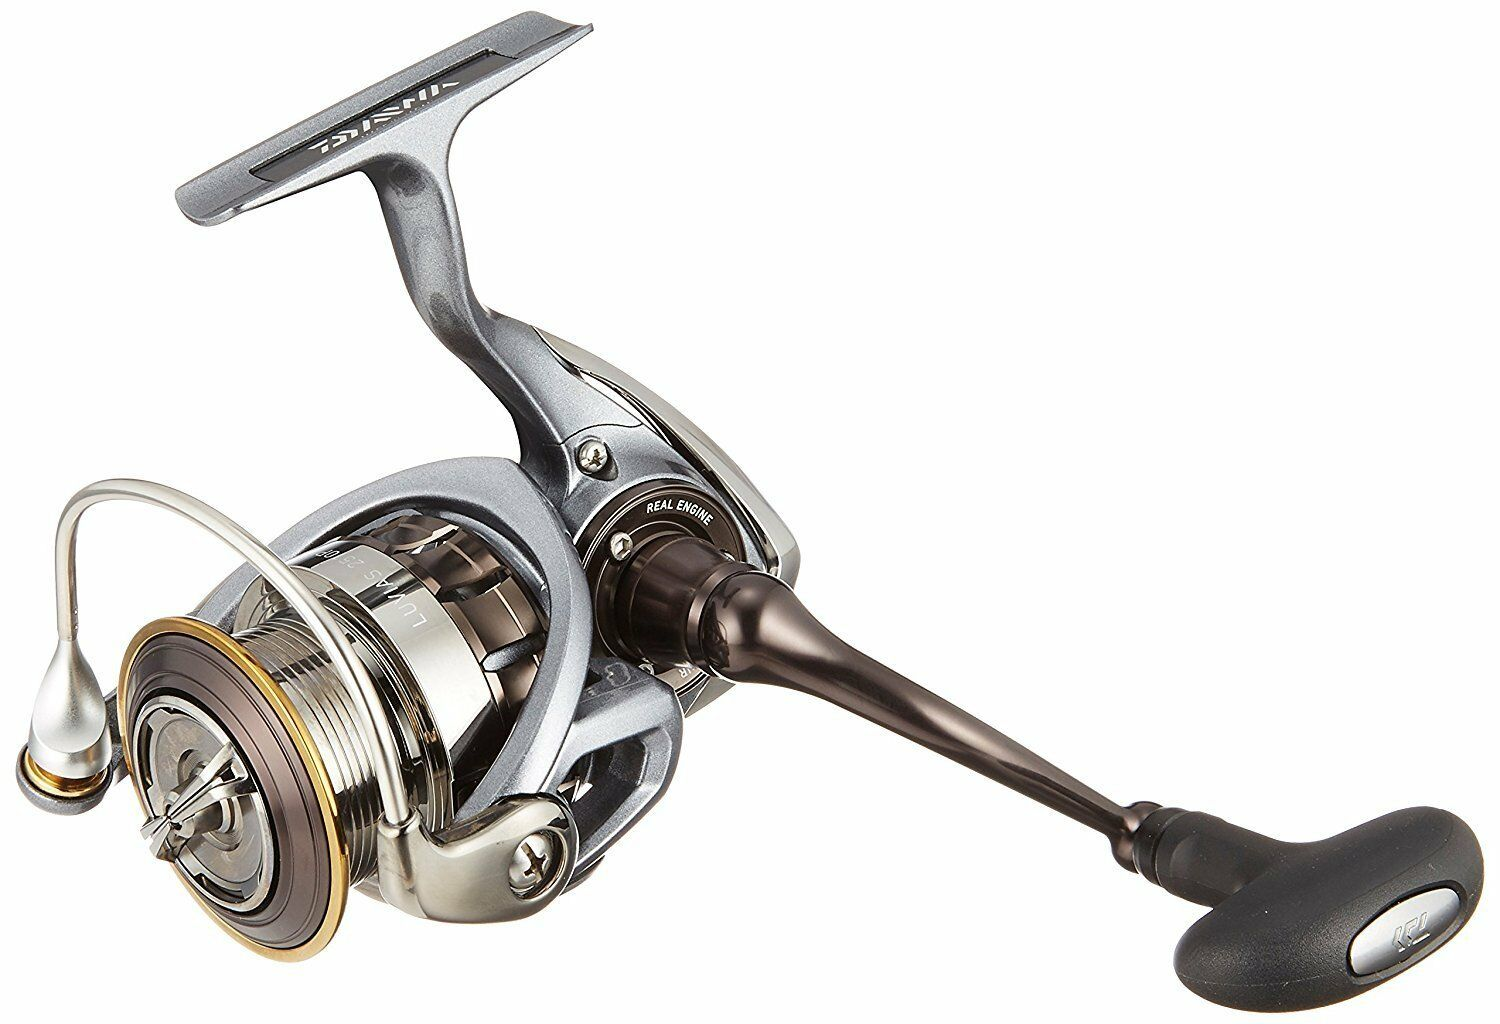 NEW Daiwa 15 LUVIAS 3012 Spininng Reel